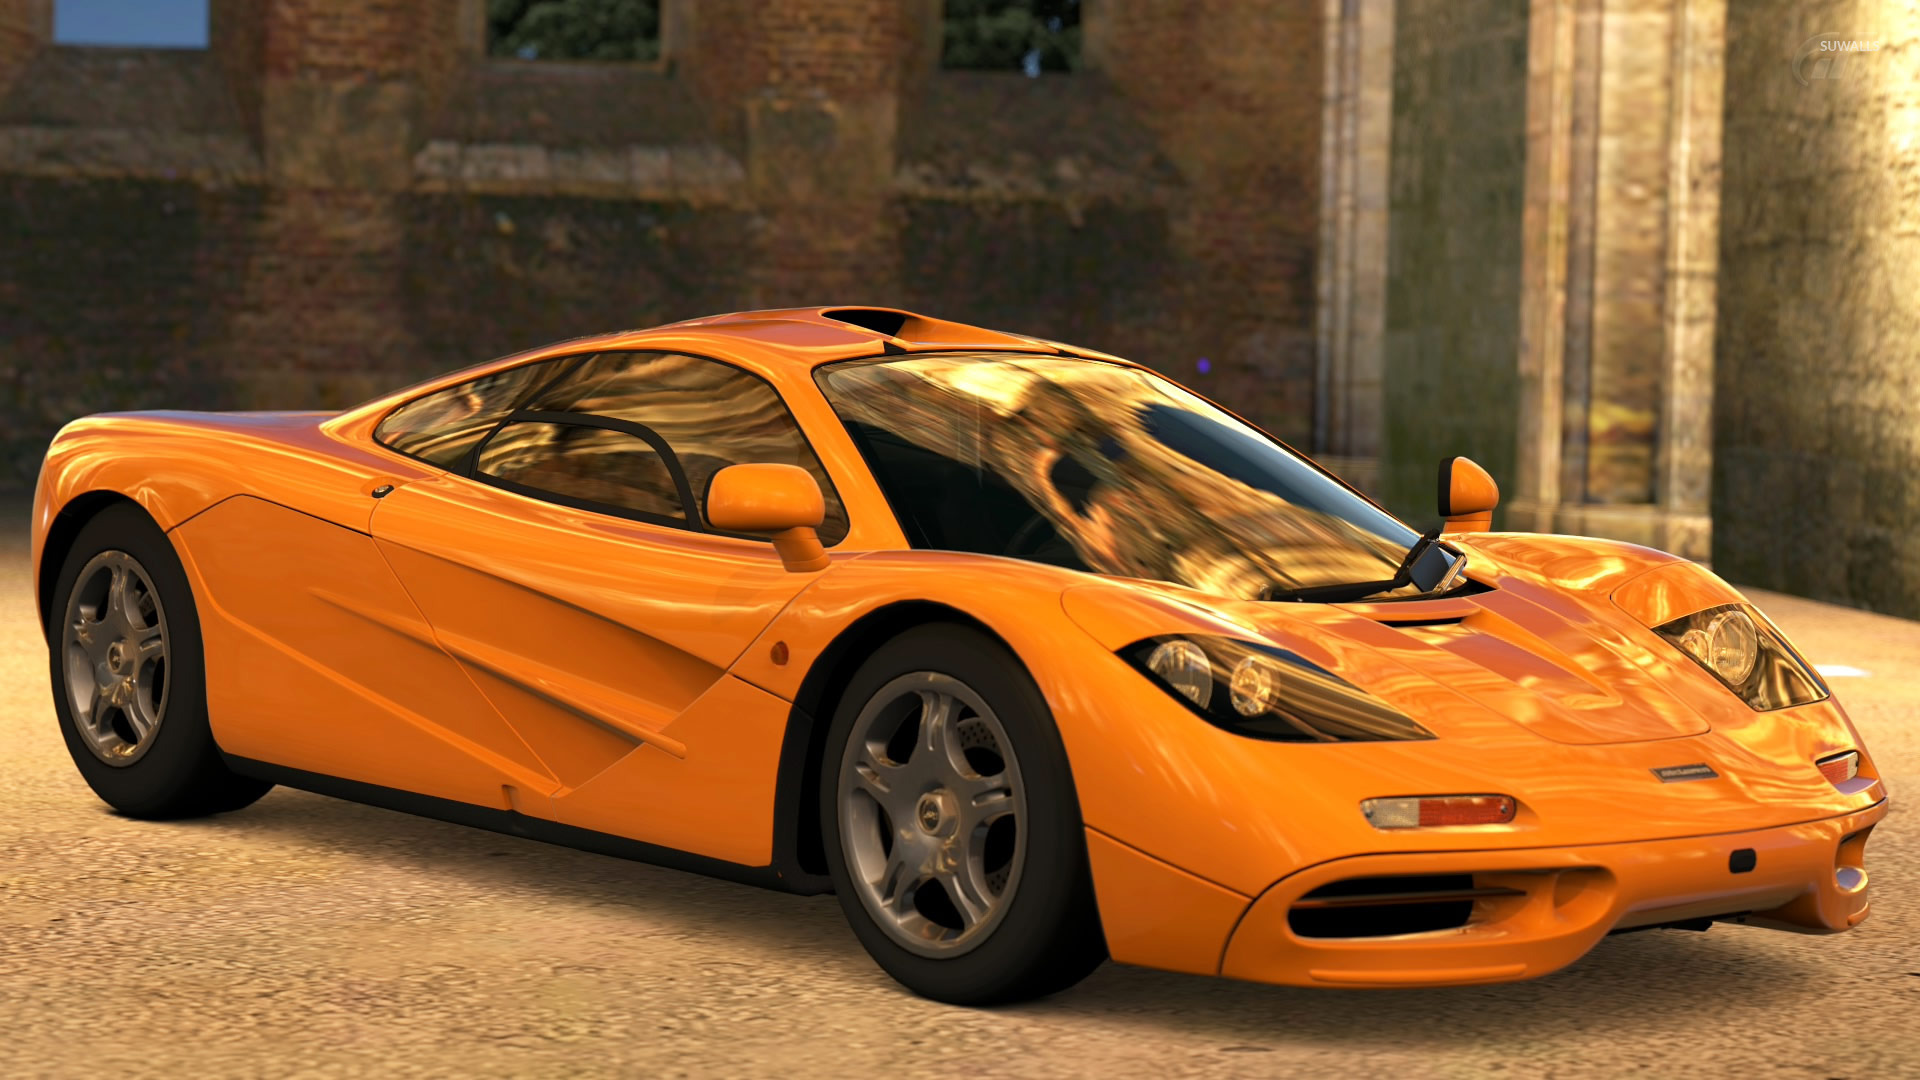 Mclaren f1 wallpapers 10